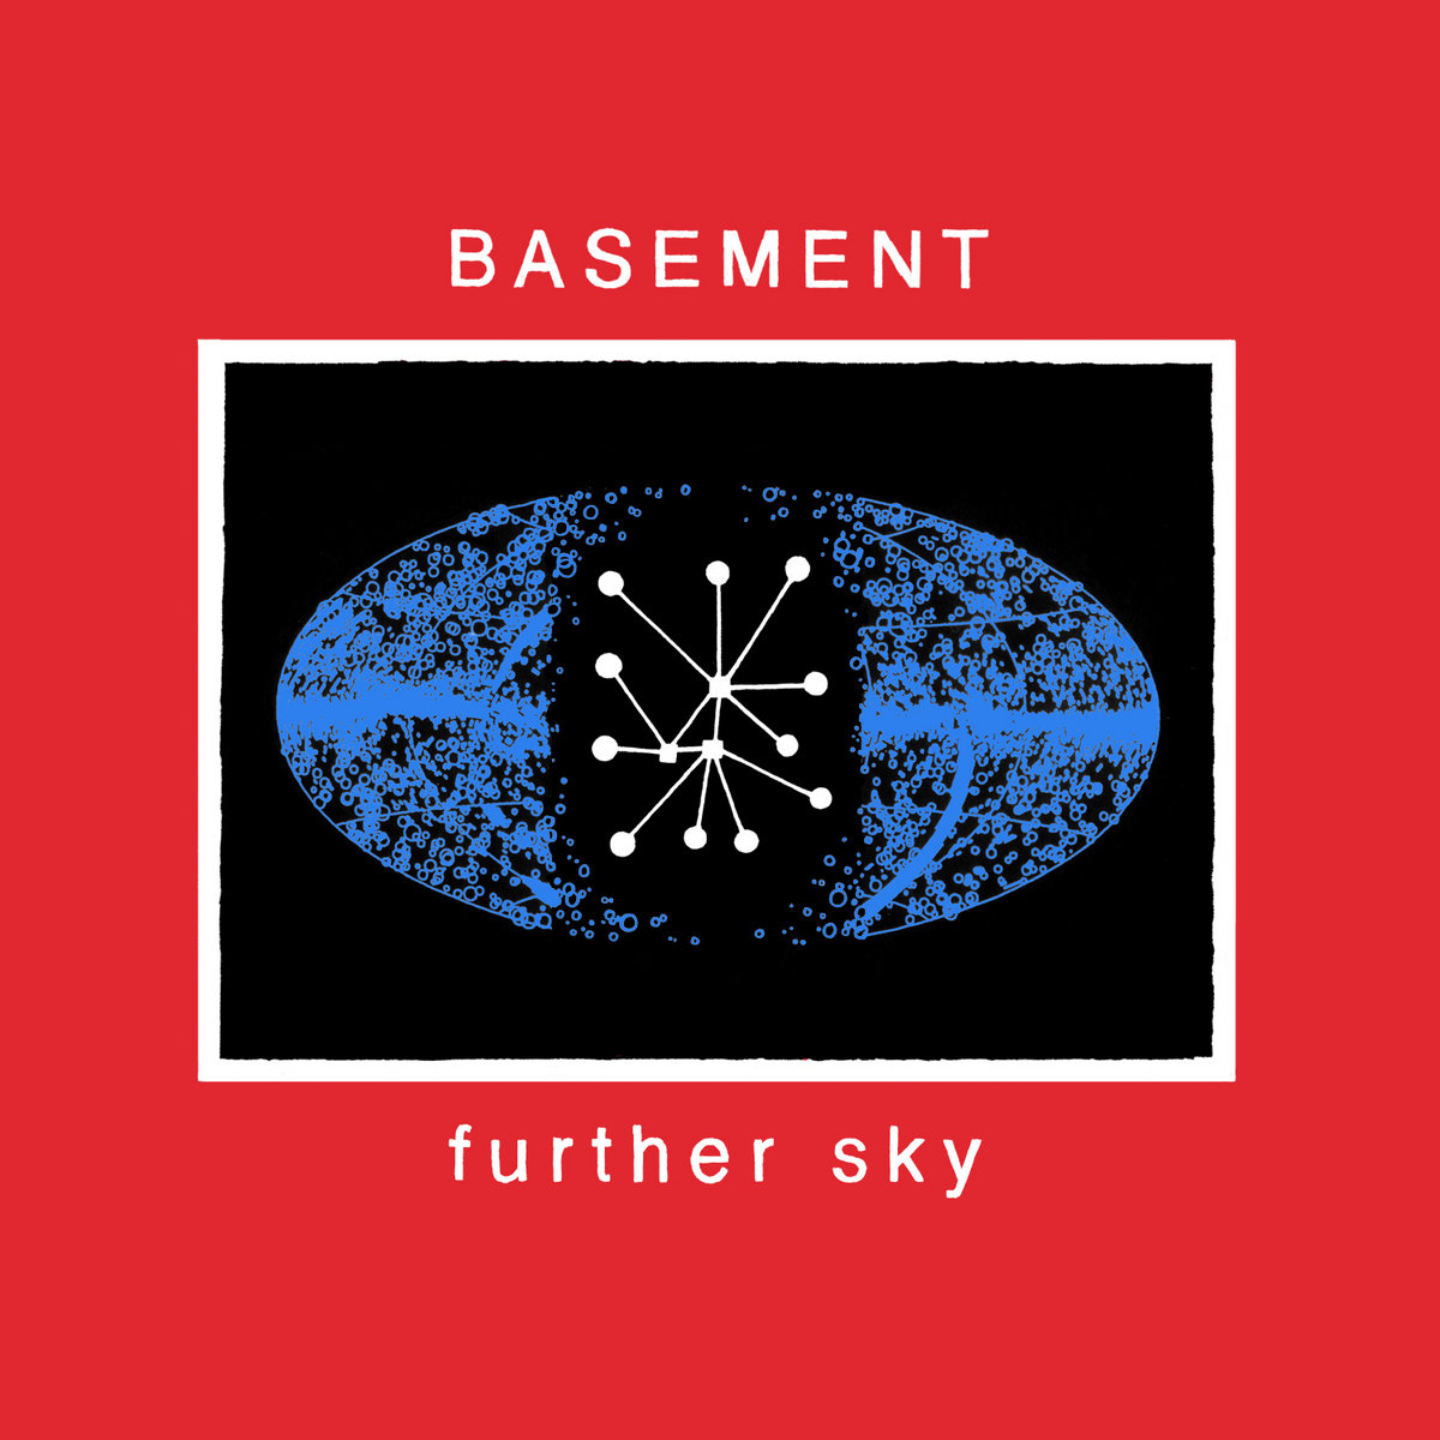 BASEMENT - Further Sky 7